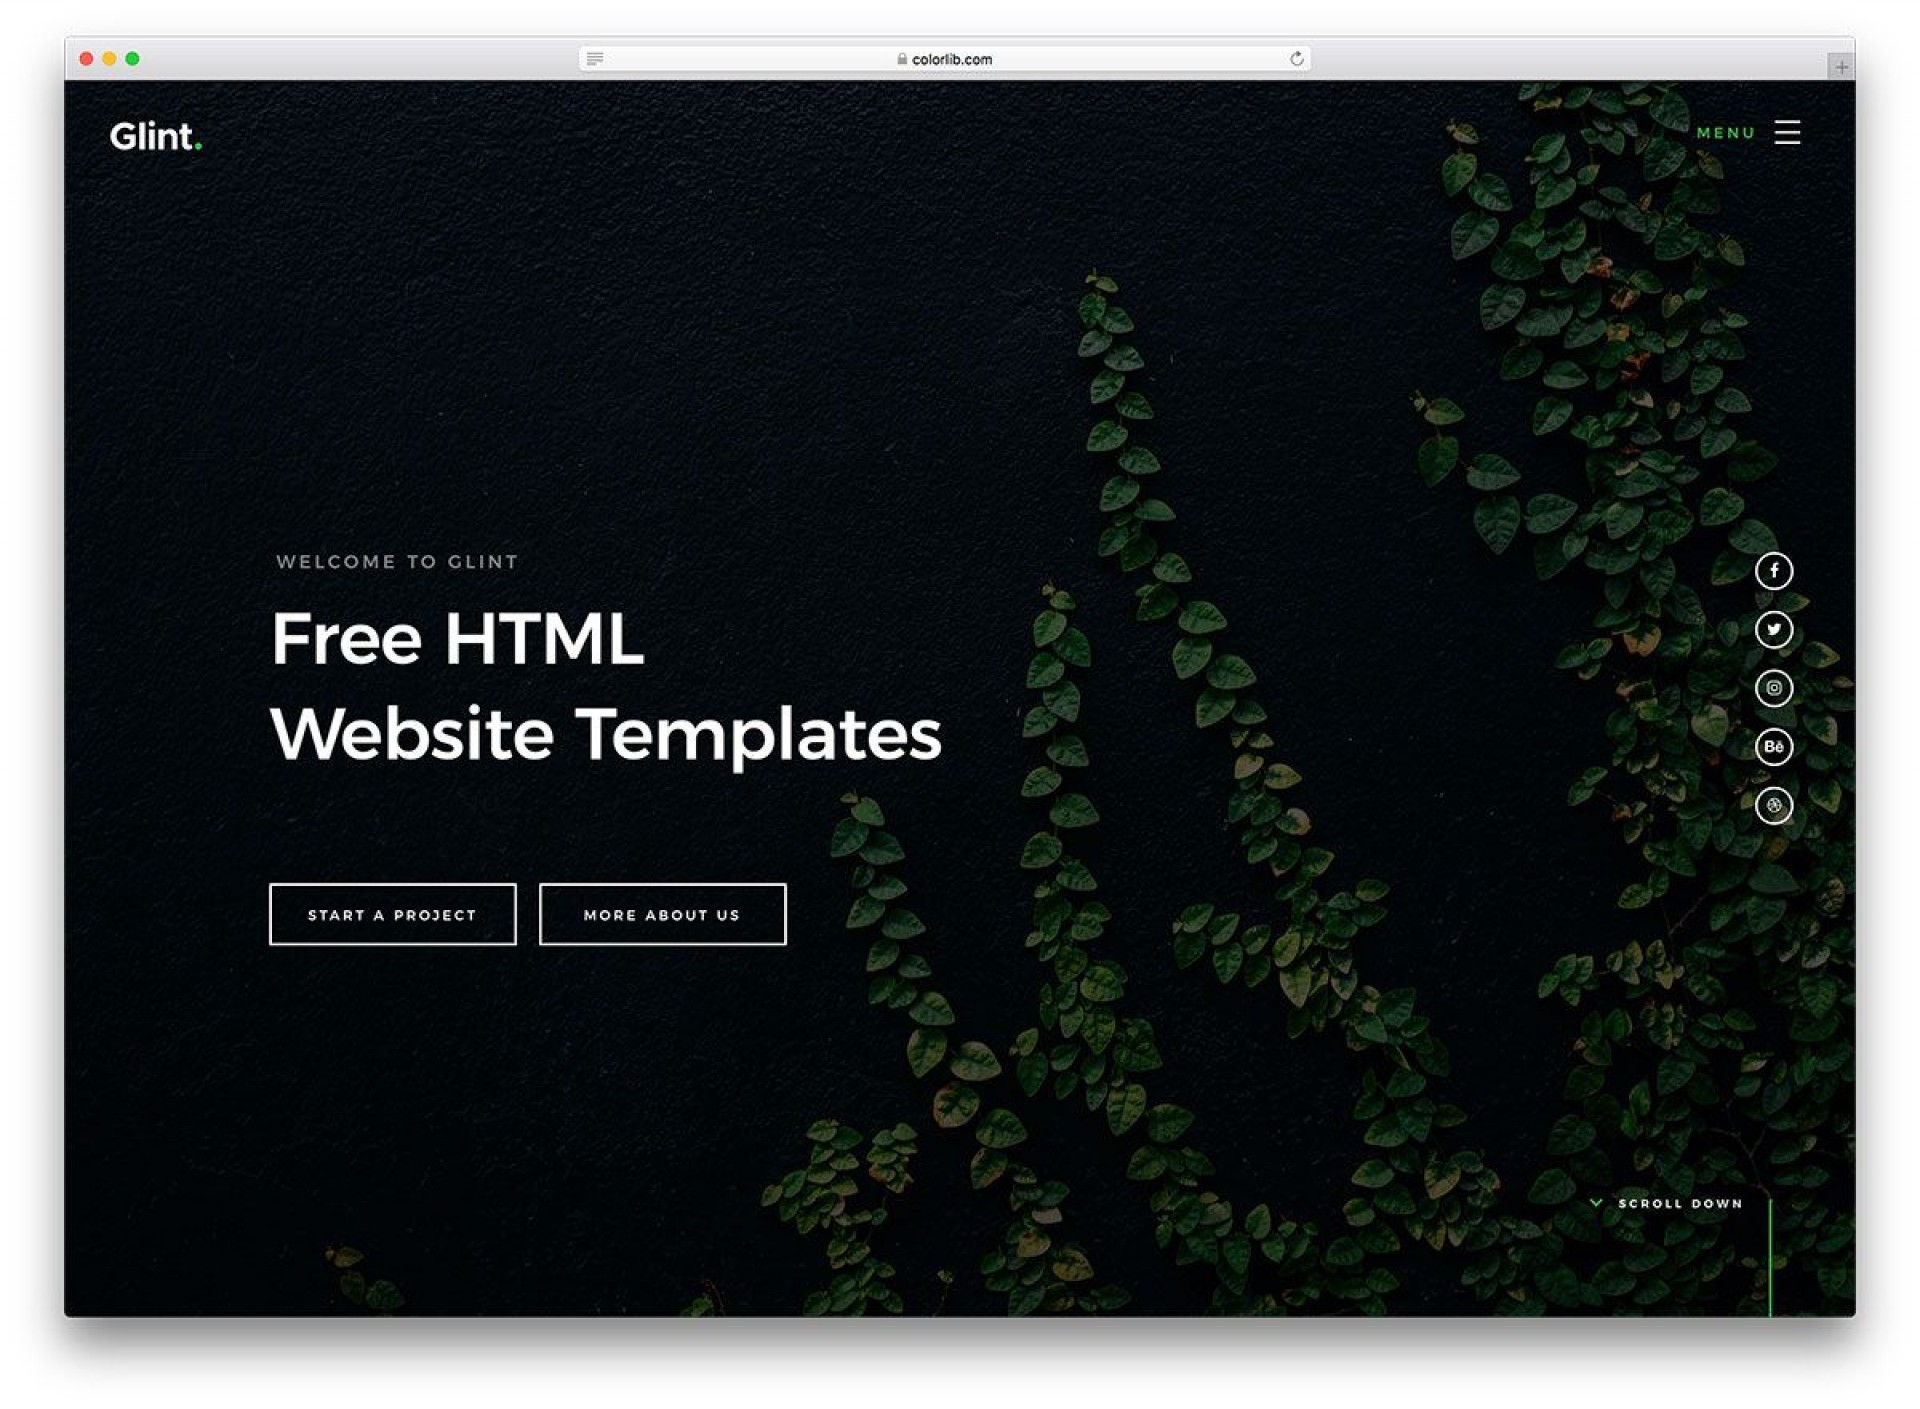 006 Surprising Free Html Responsive Website Template Download Highest Clarity  And Cs Jquery For It Company With Web1920